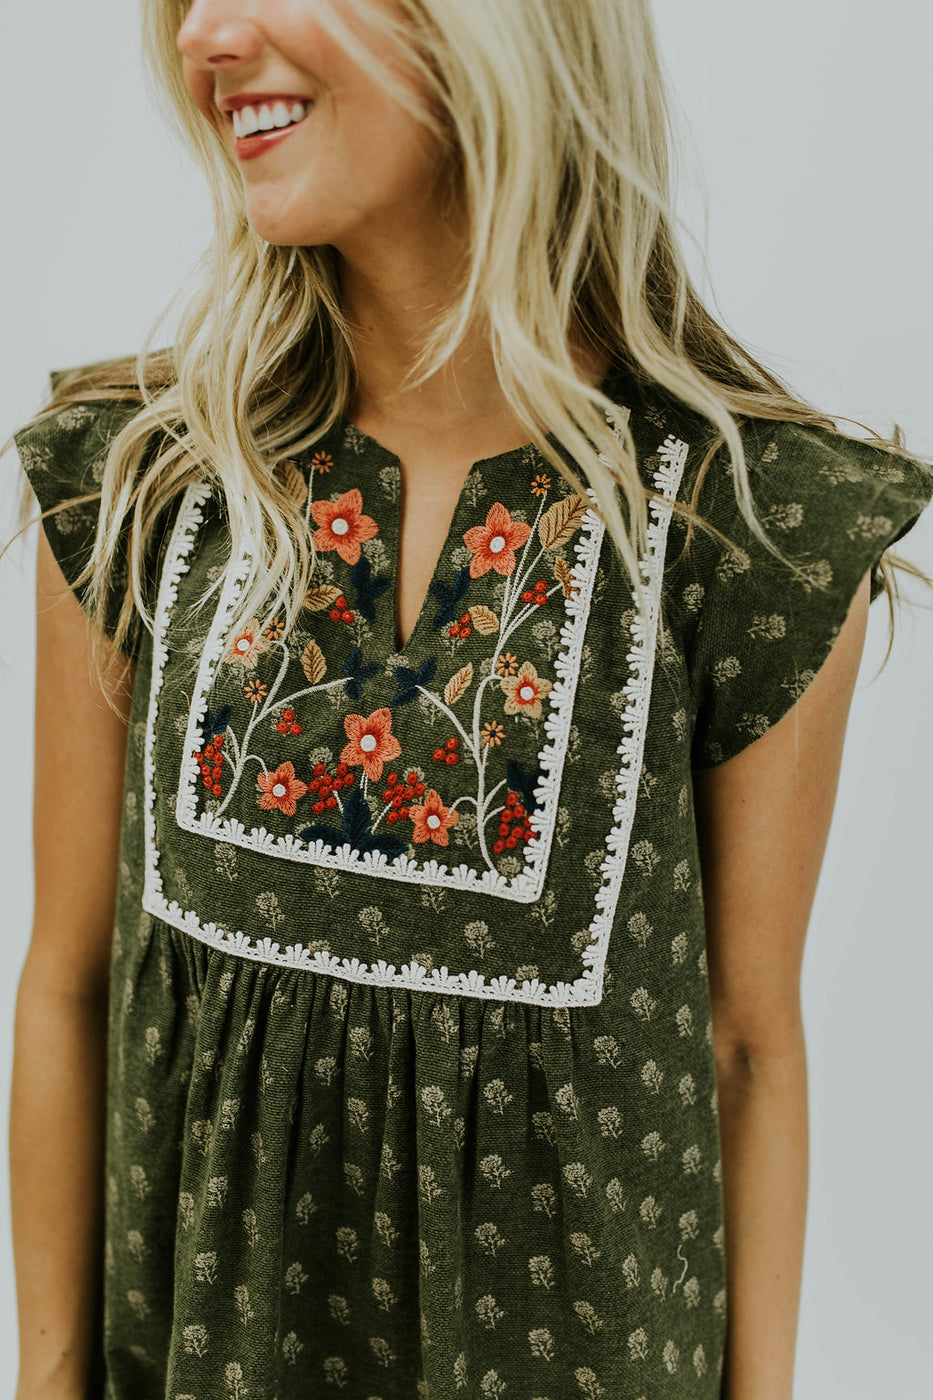 Floral Embroidery on Front of Dress | ROOLEE